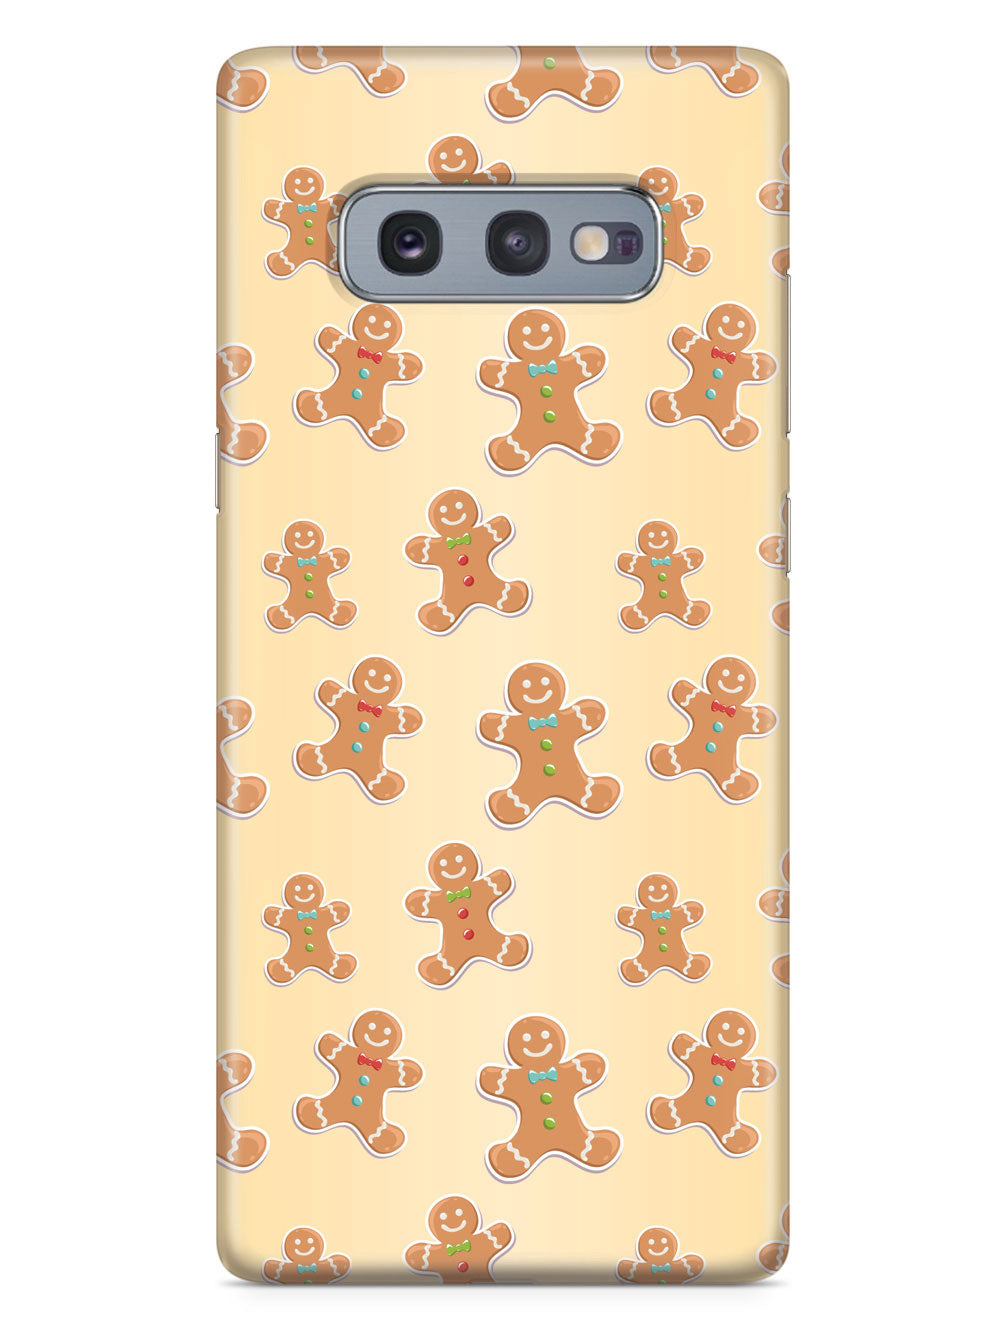 Gingerbread Man Pattern - White Case